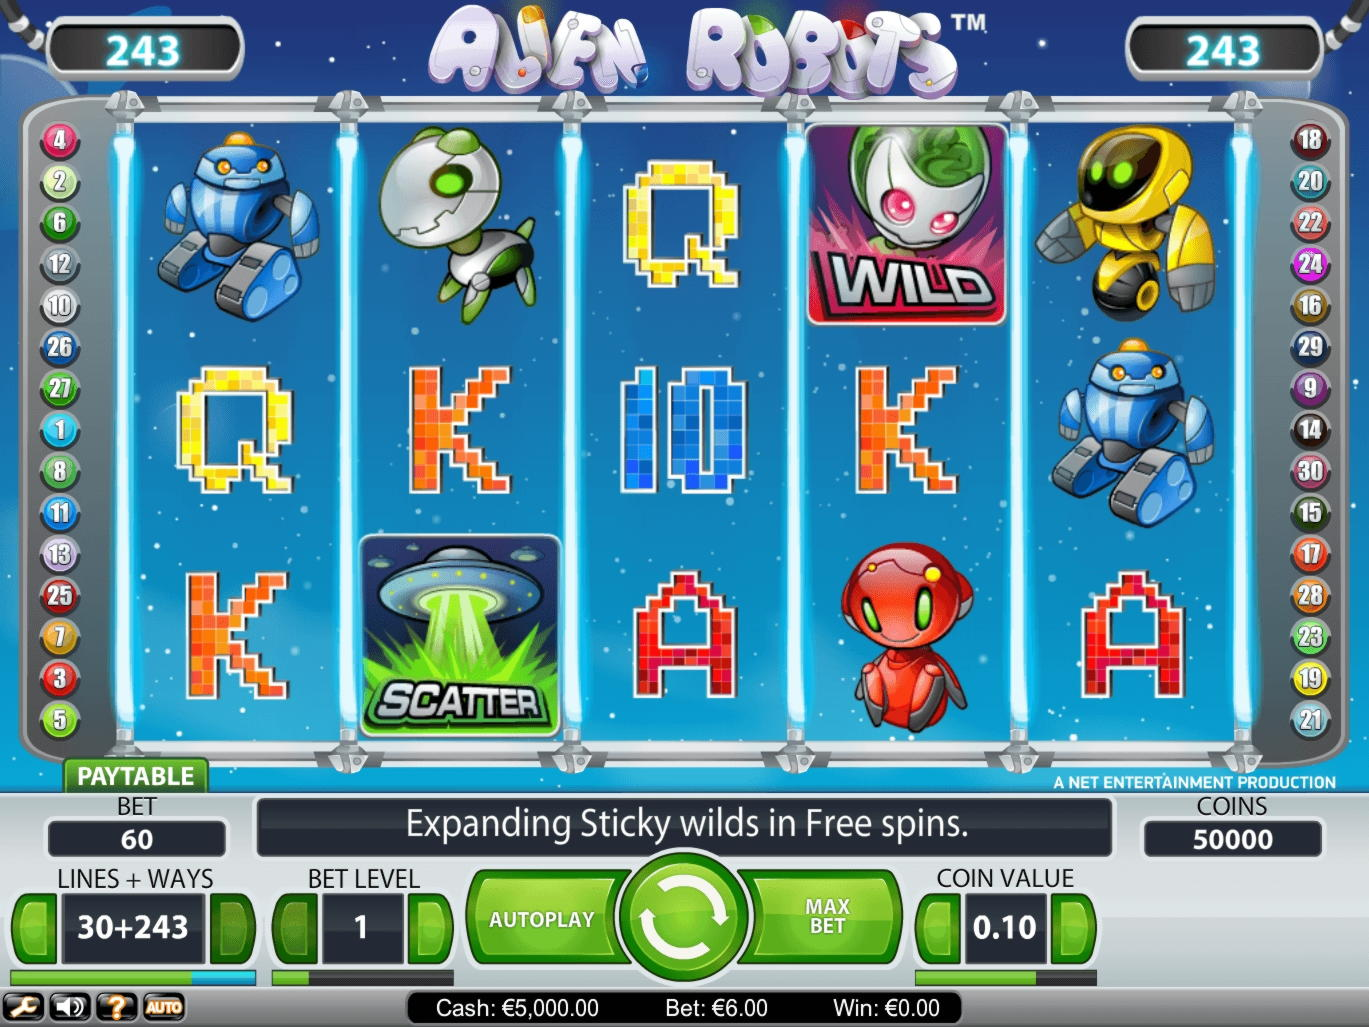 150 Free spins no deposit at Party Casino